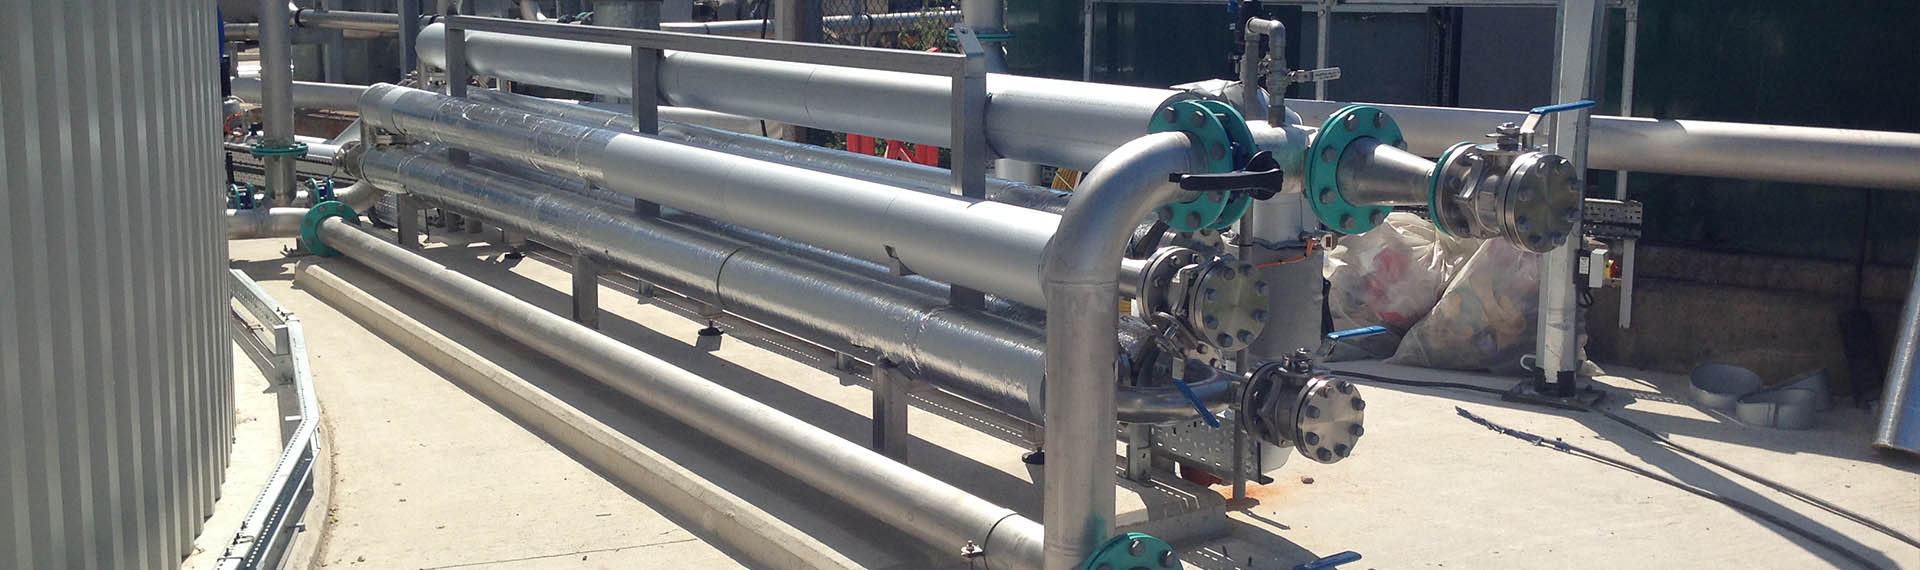 edwards elite engineering wirral cheshire merseyside design steel fabrication pipes pipework